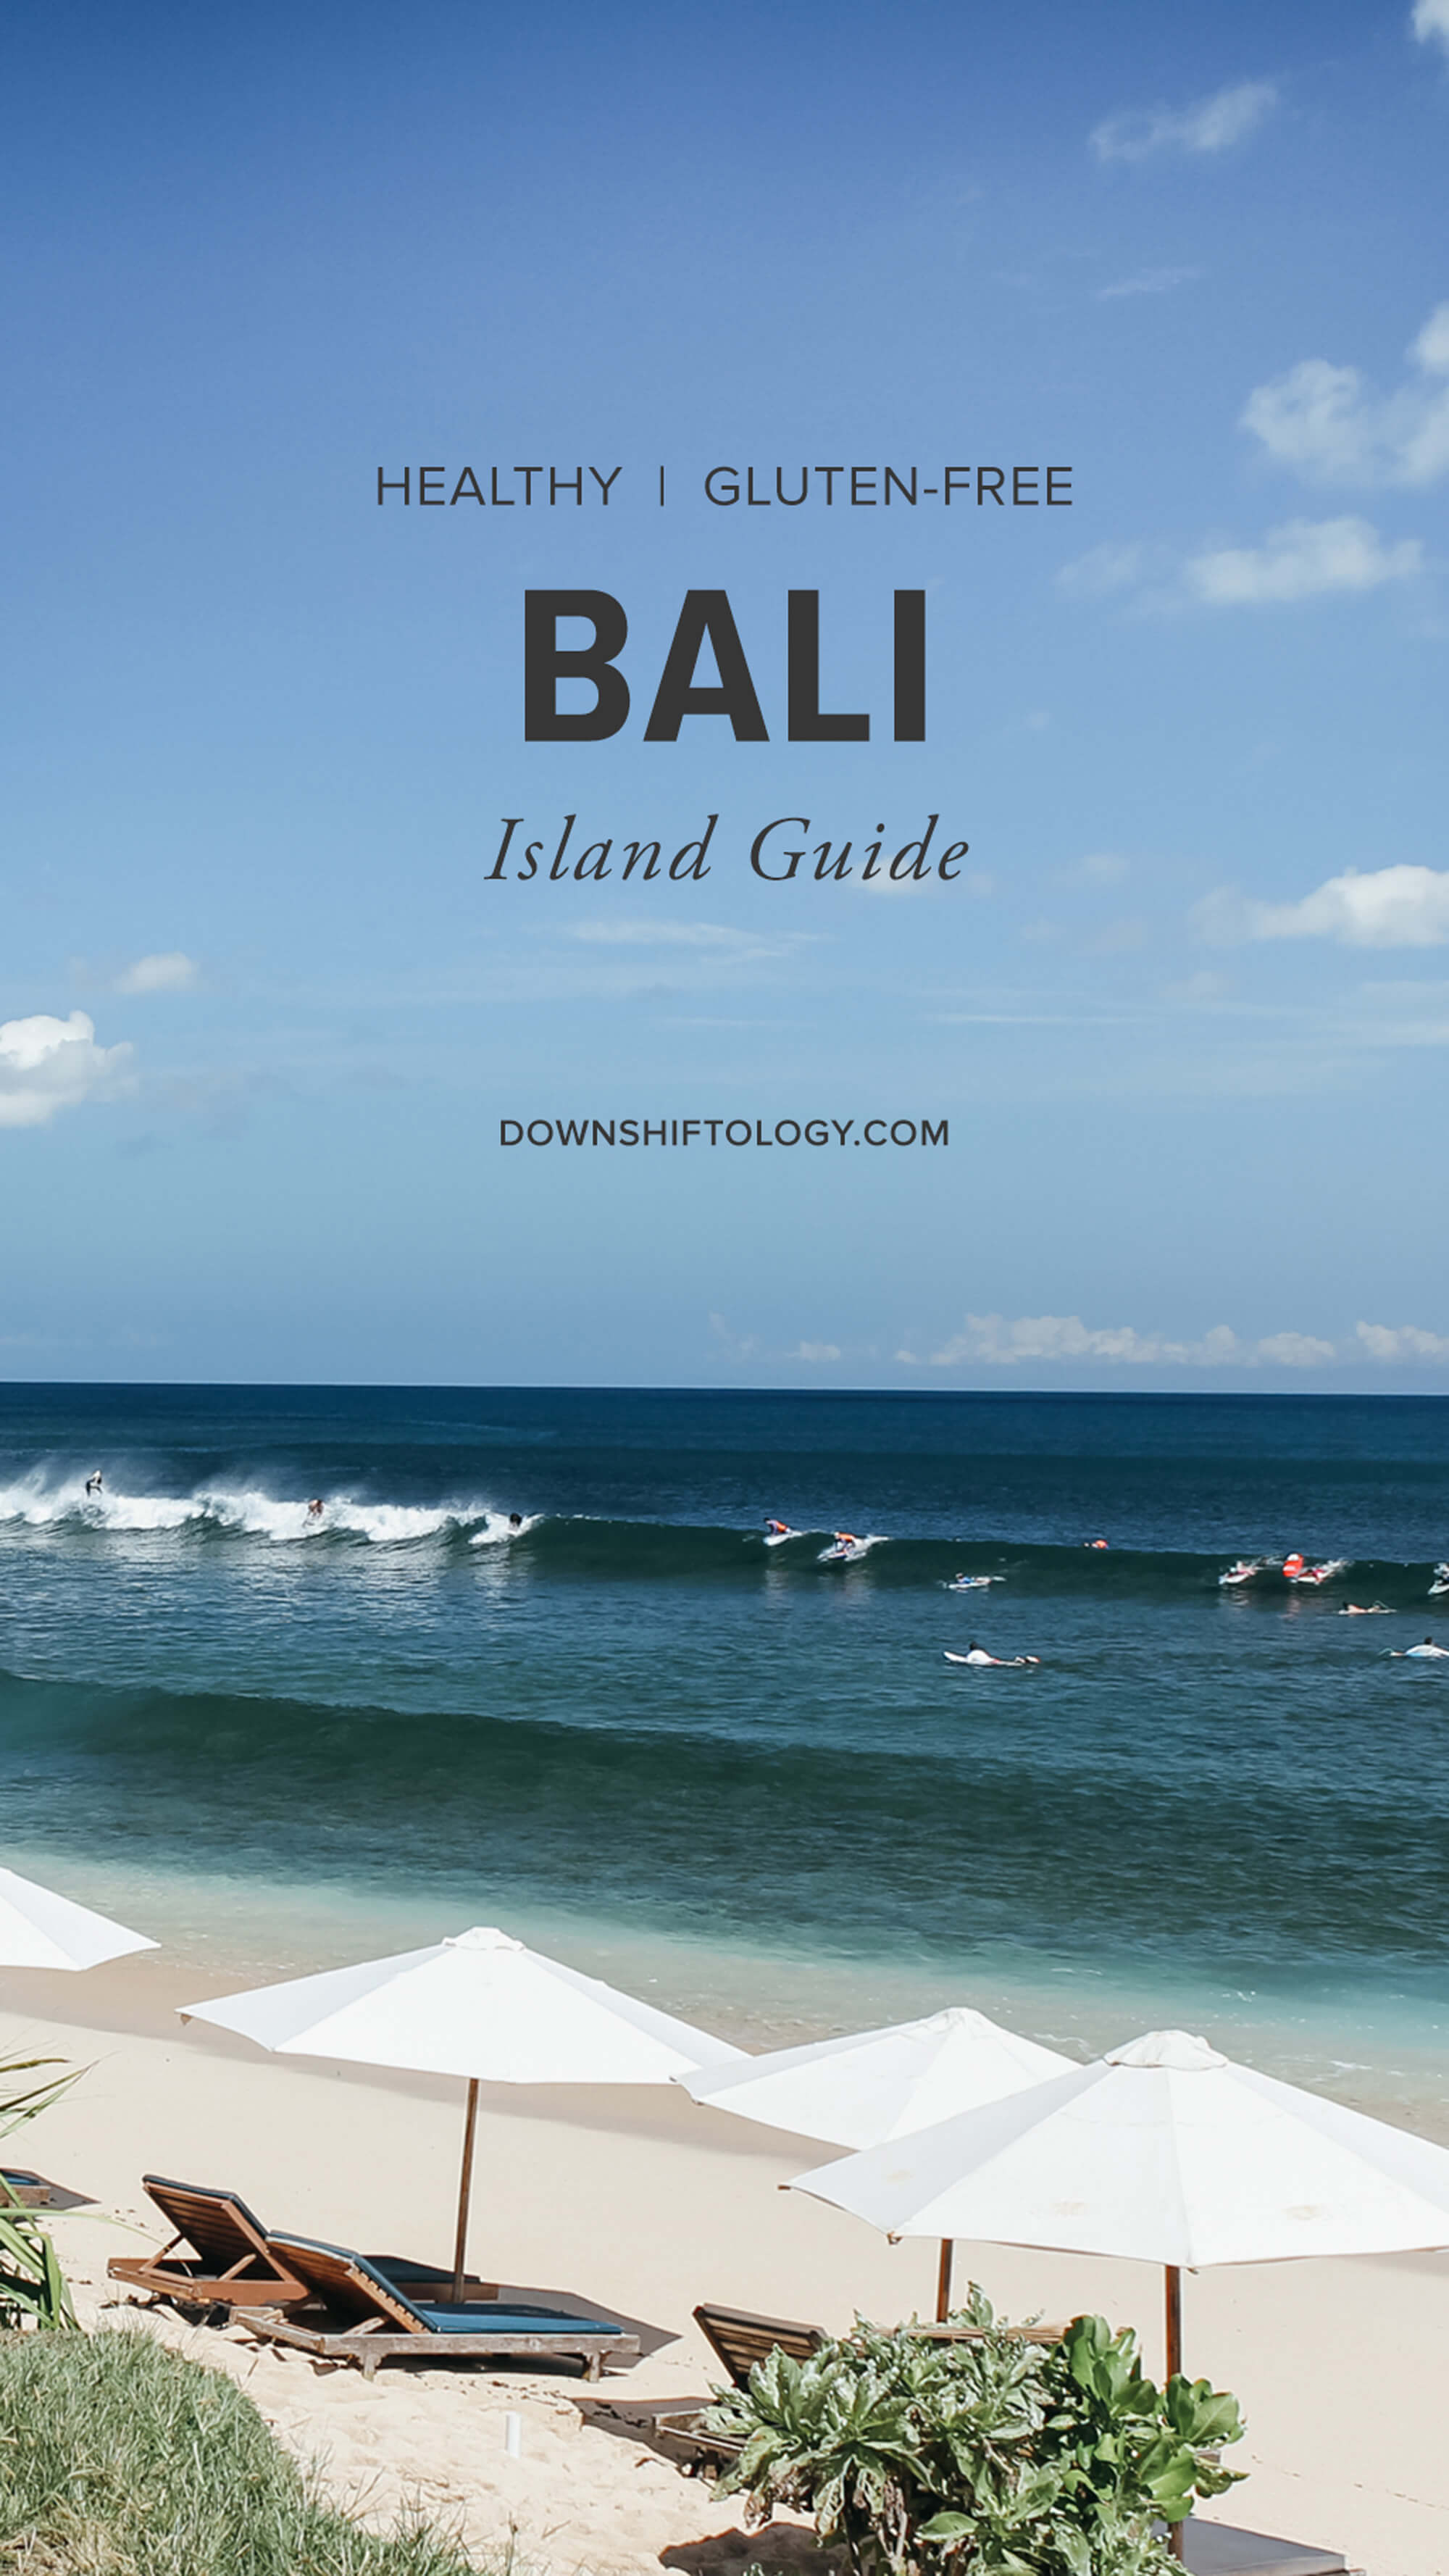 Bali Island Guide: A healthy, real food, gluten-free travel guide to Bali (including Ubud, Seminyak, Canggu, the Bukit and more).